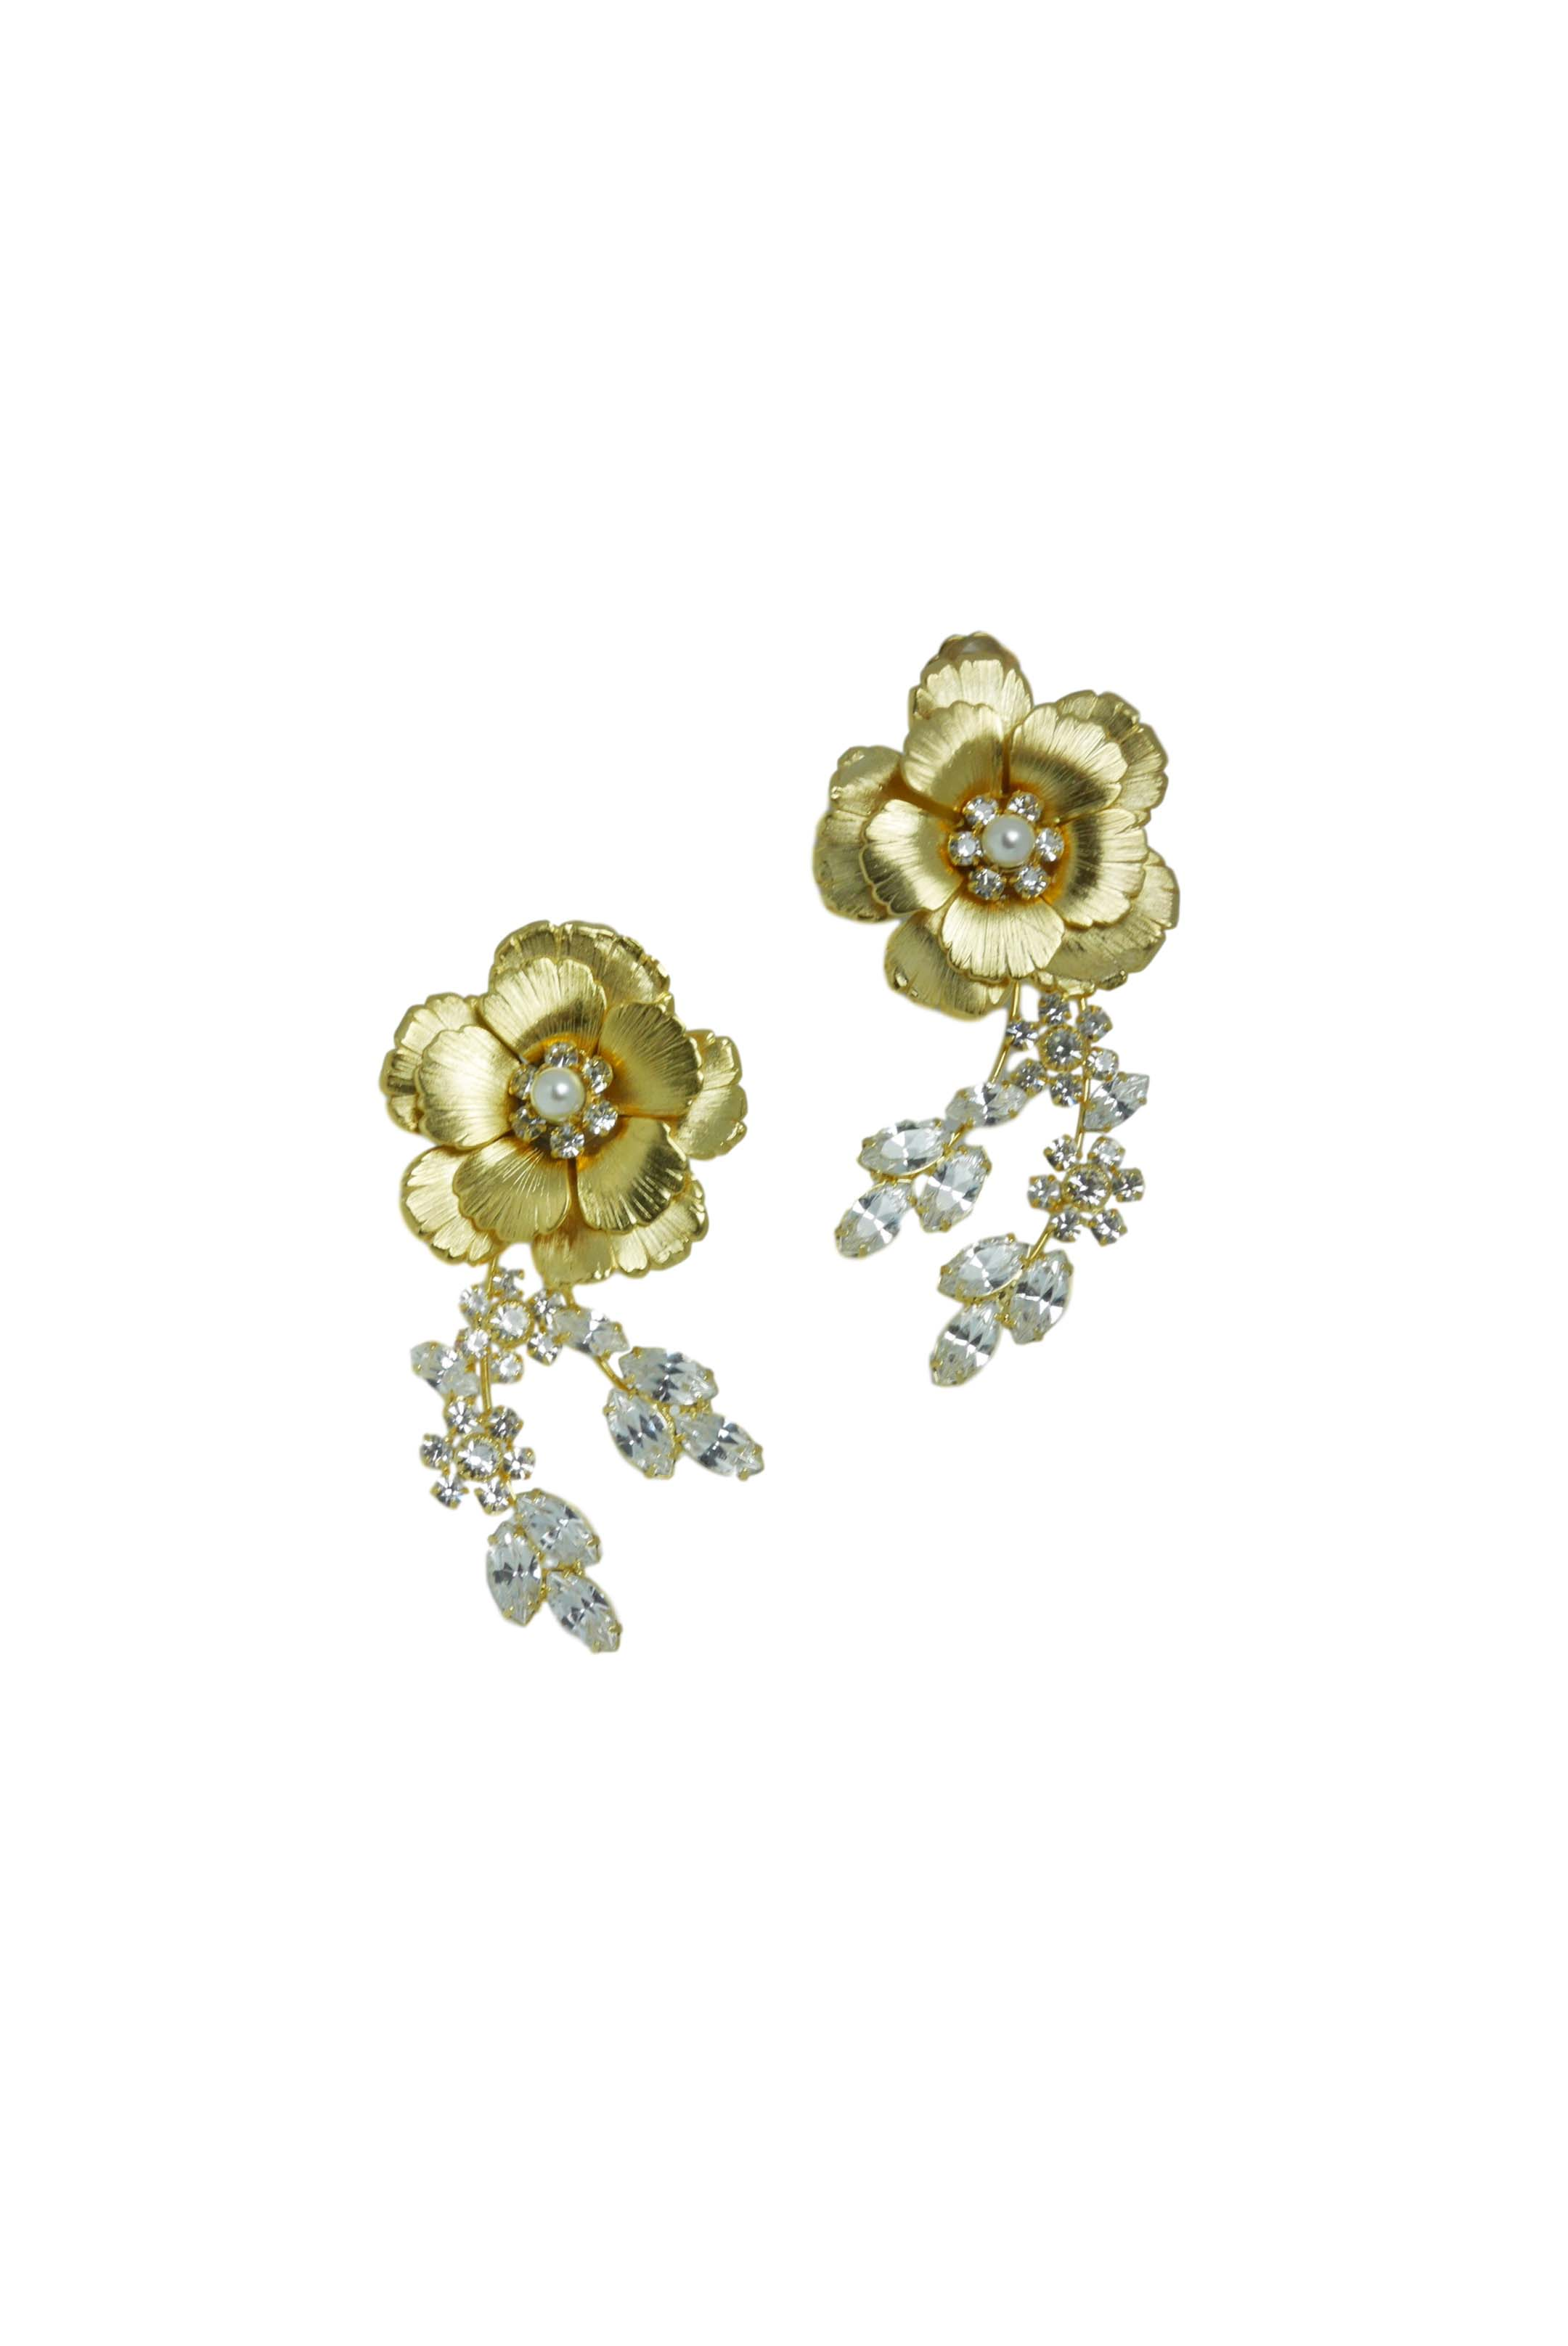 [RENTAL][Gold Flower Earrings]by Ti Adoro Jewelry(参考価格¥32,400)